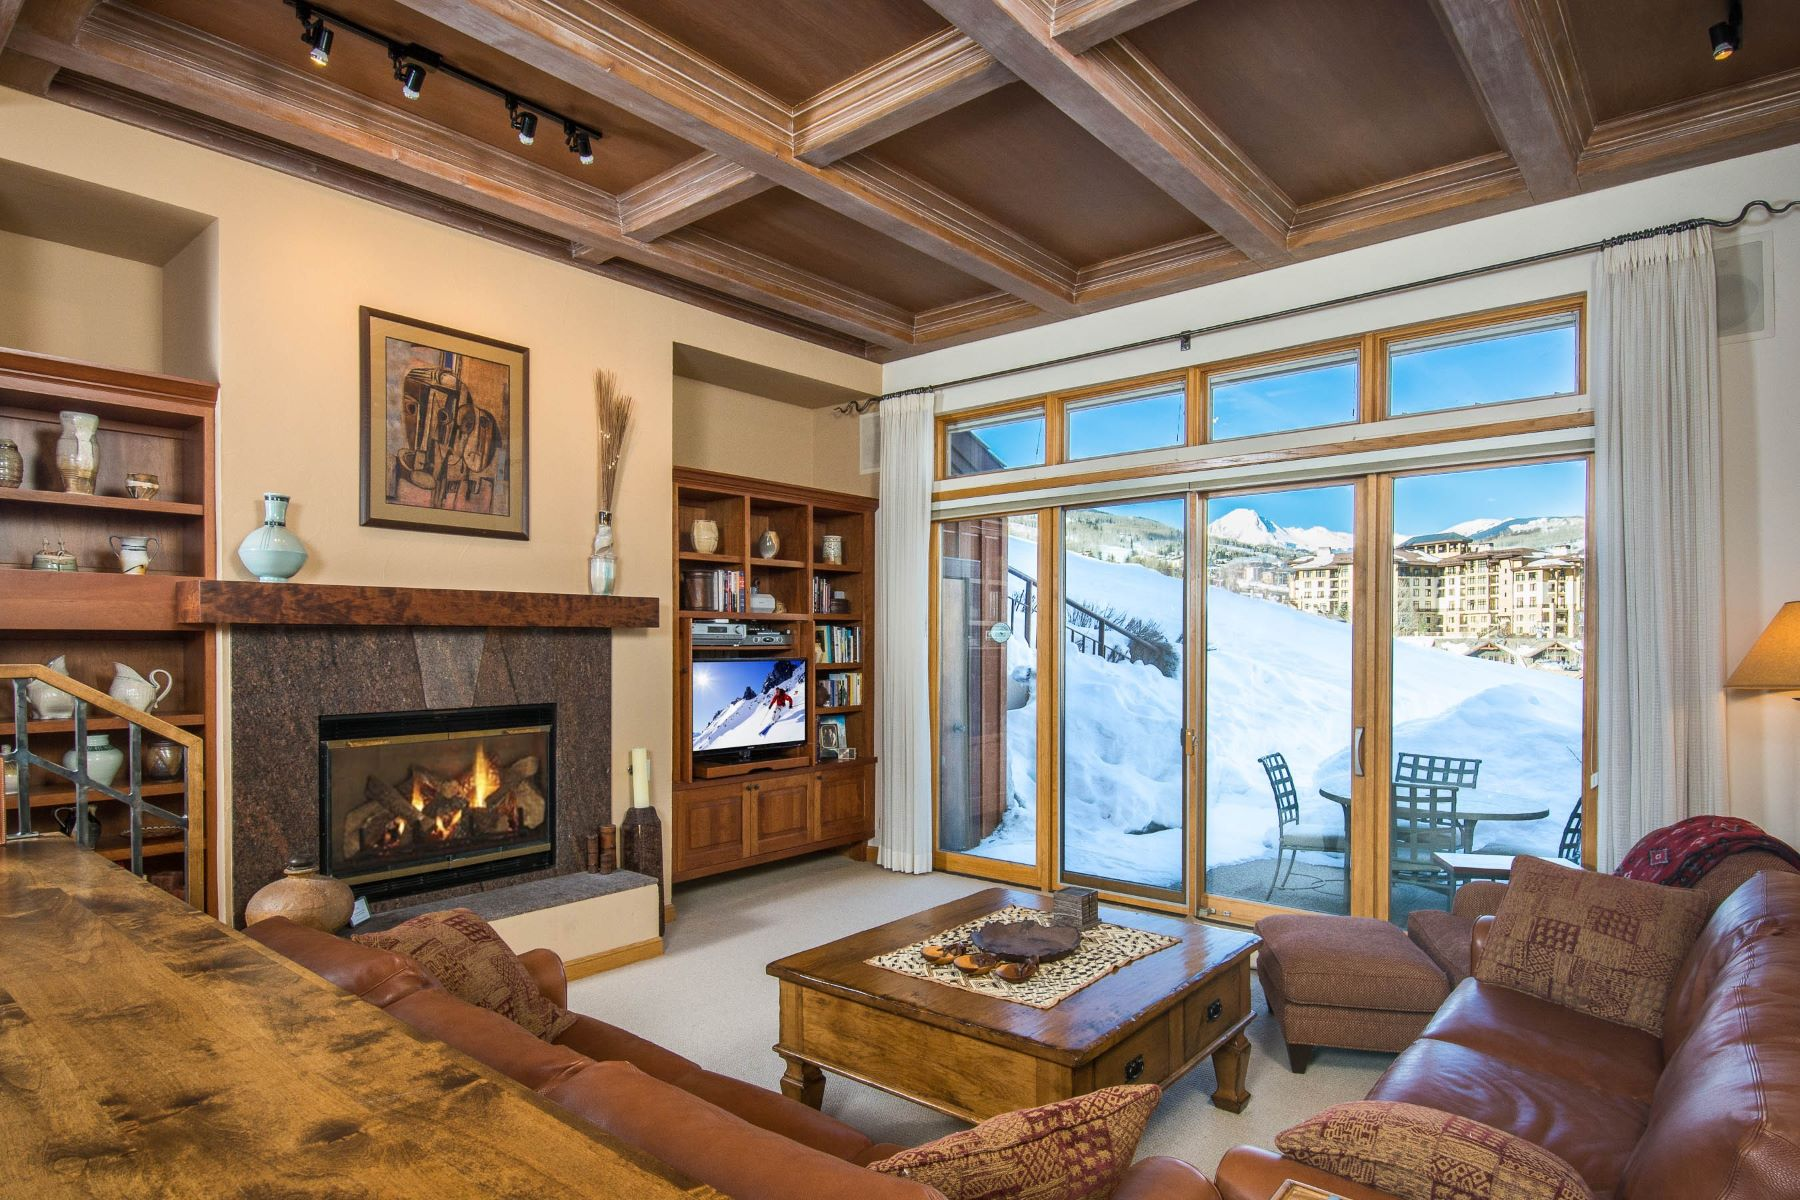 Appartement en copropriété pour l Vente à Spacious 3 Bedroom Ski Retreat 770 Ridge Road, Unit 5 Snowmass Village, Colorado, 81615 États-Unis